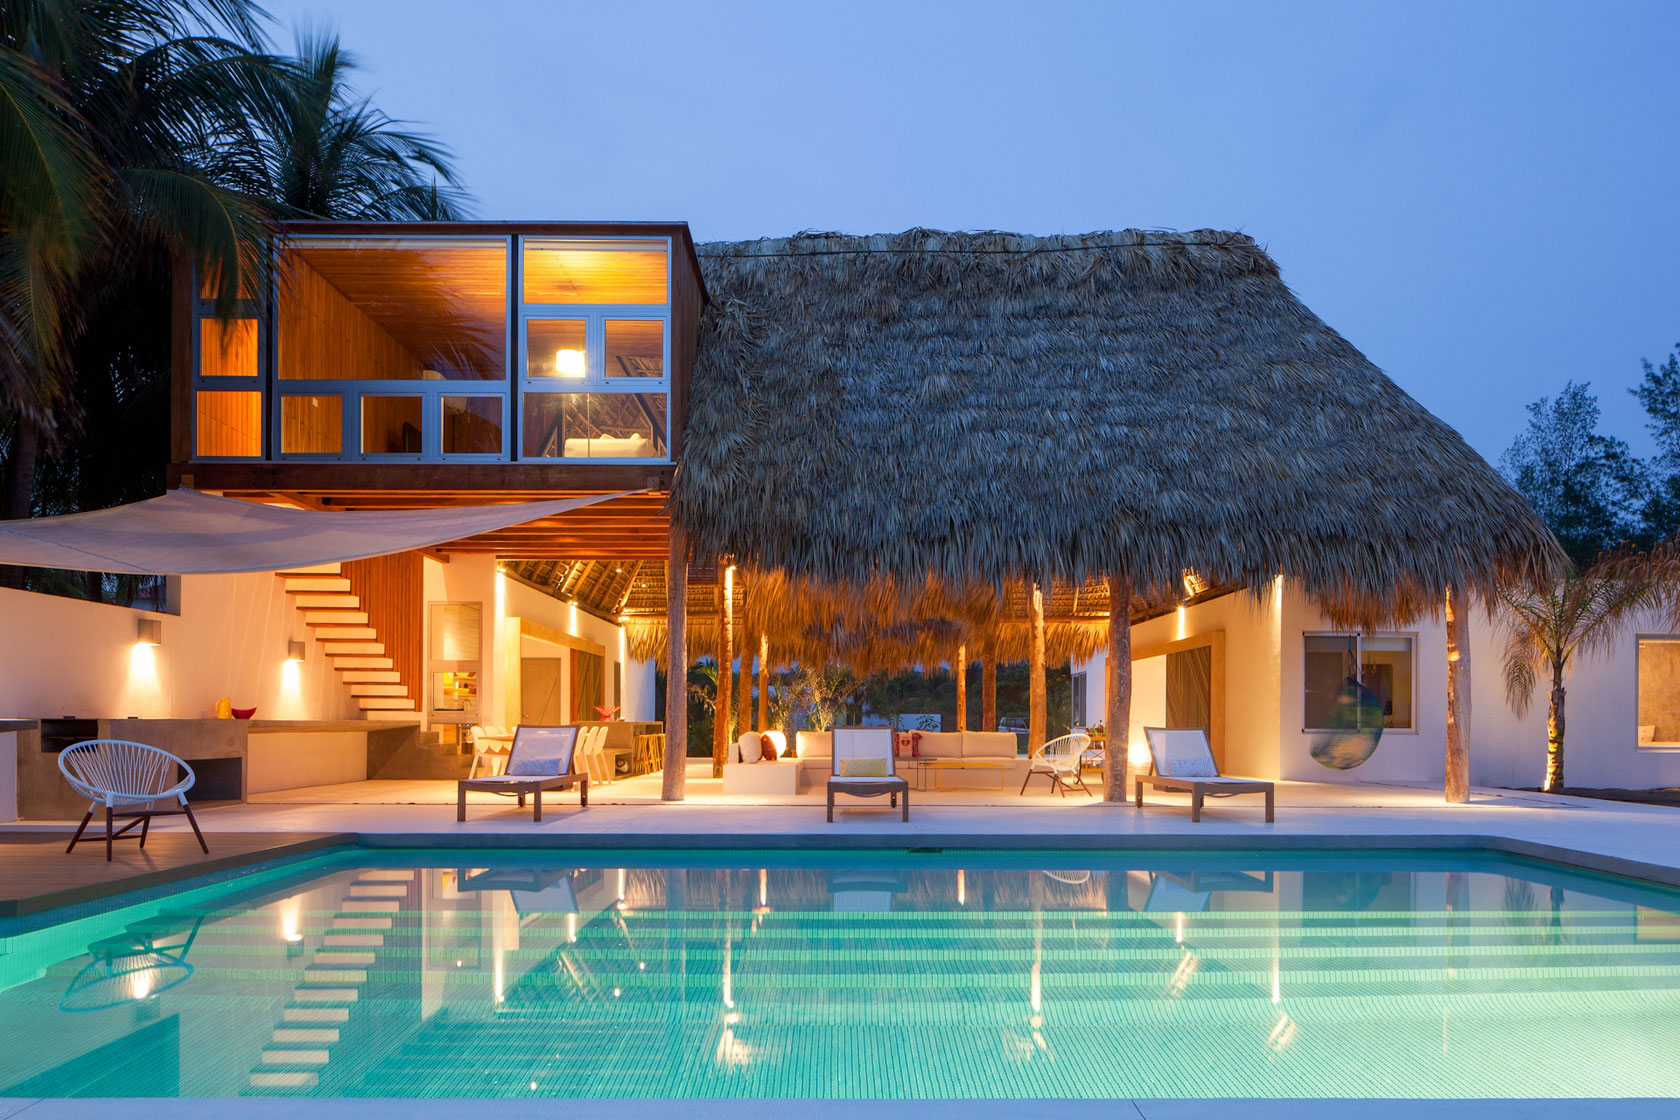 Pool, Terrace, Garden Furniture, Beach House in San Salvador, El Salvador